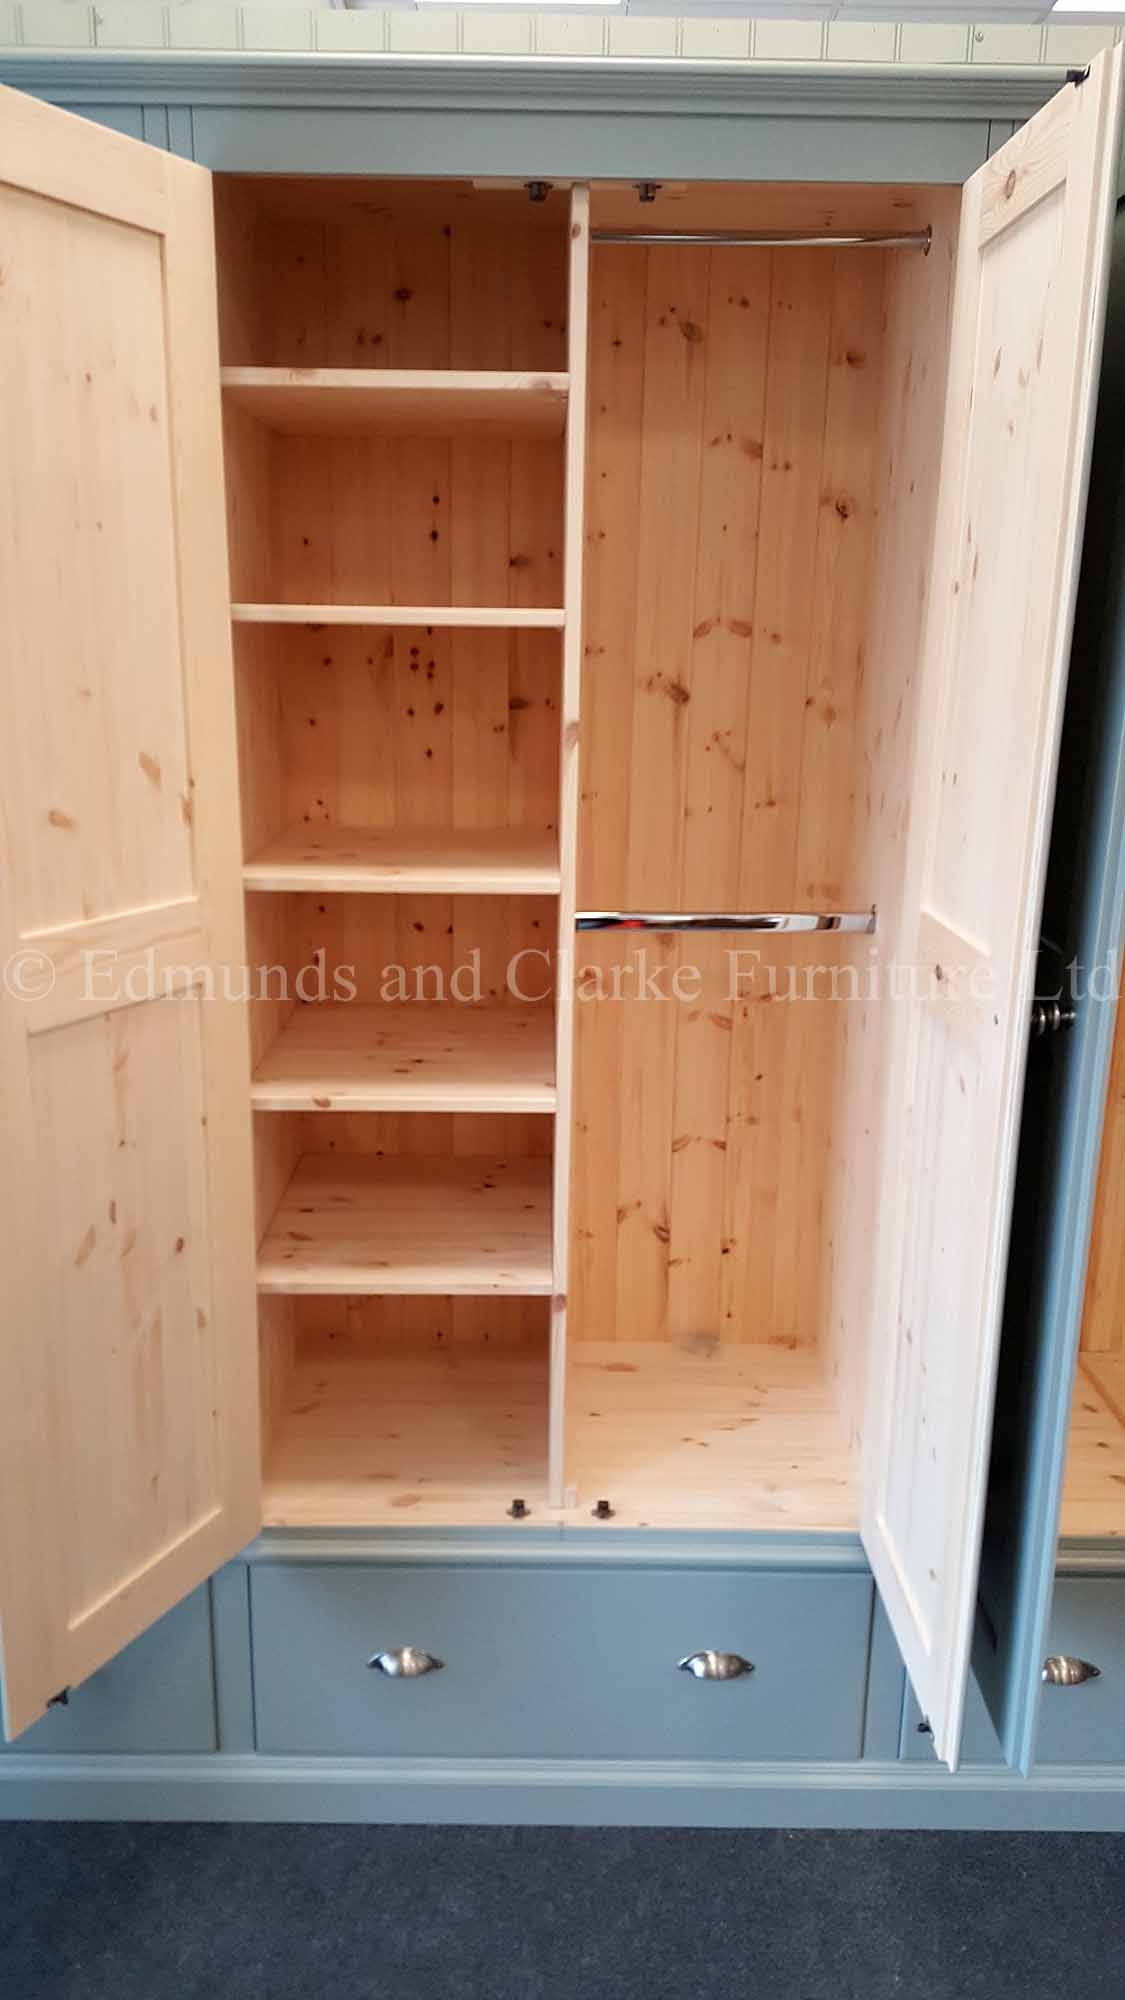 Bespoke painted wardrobe with hanging rail and shelves internally